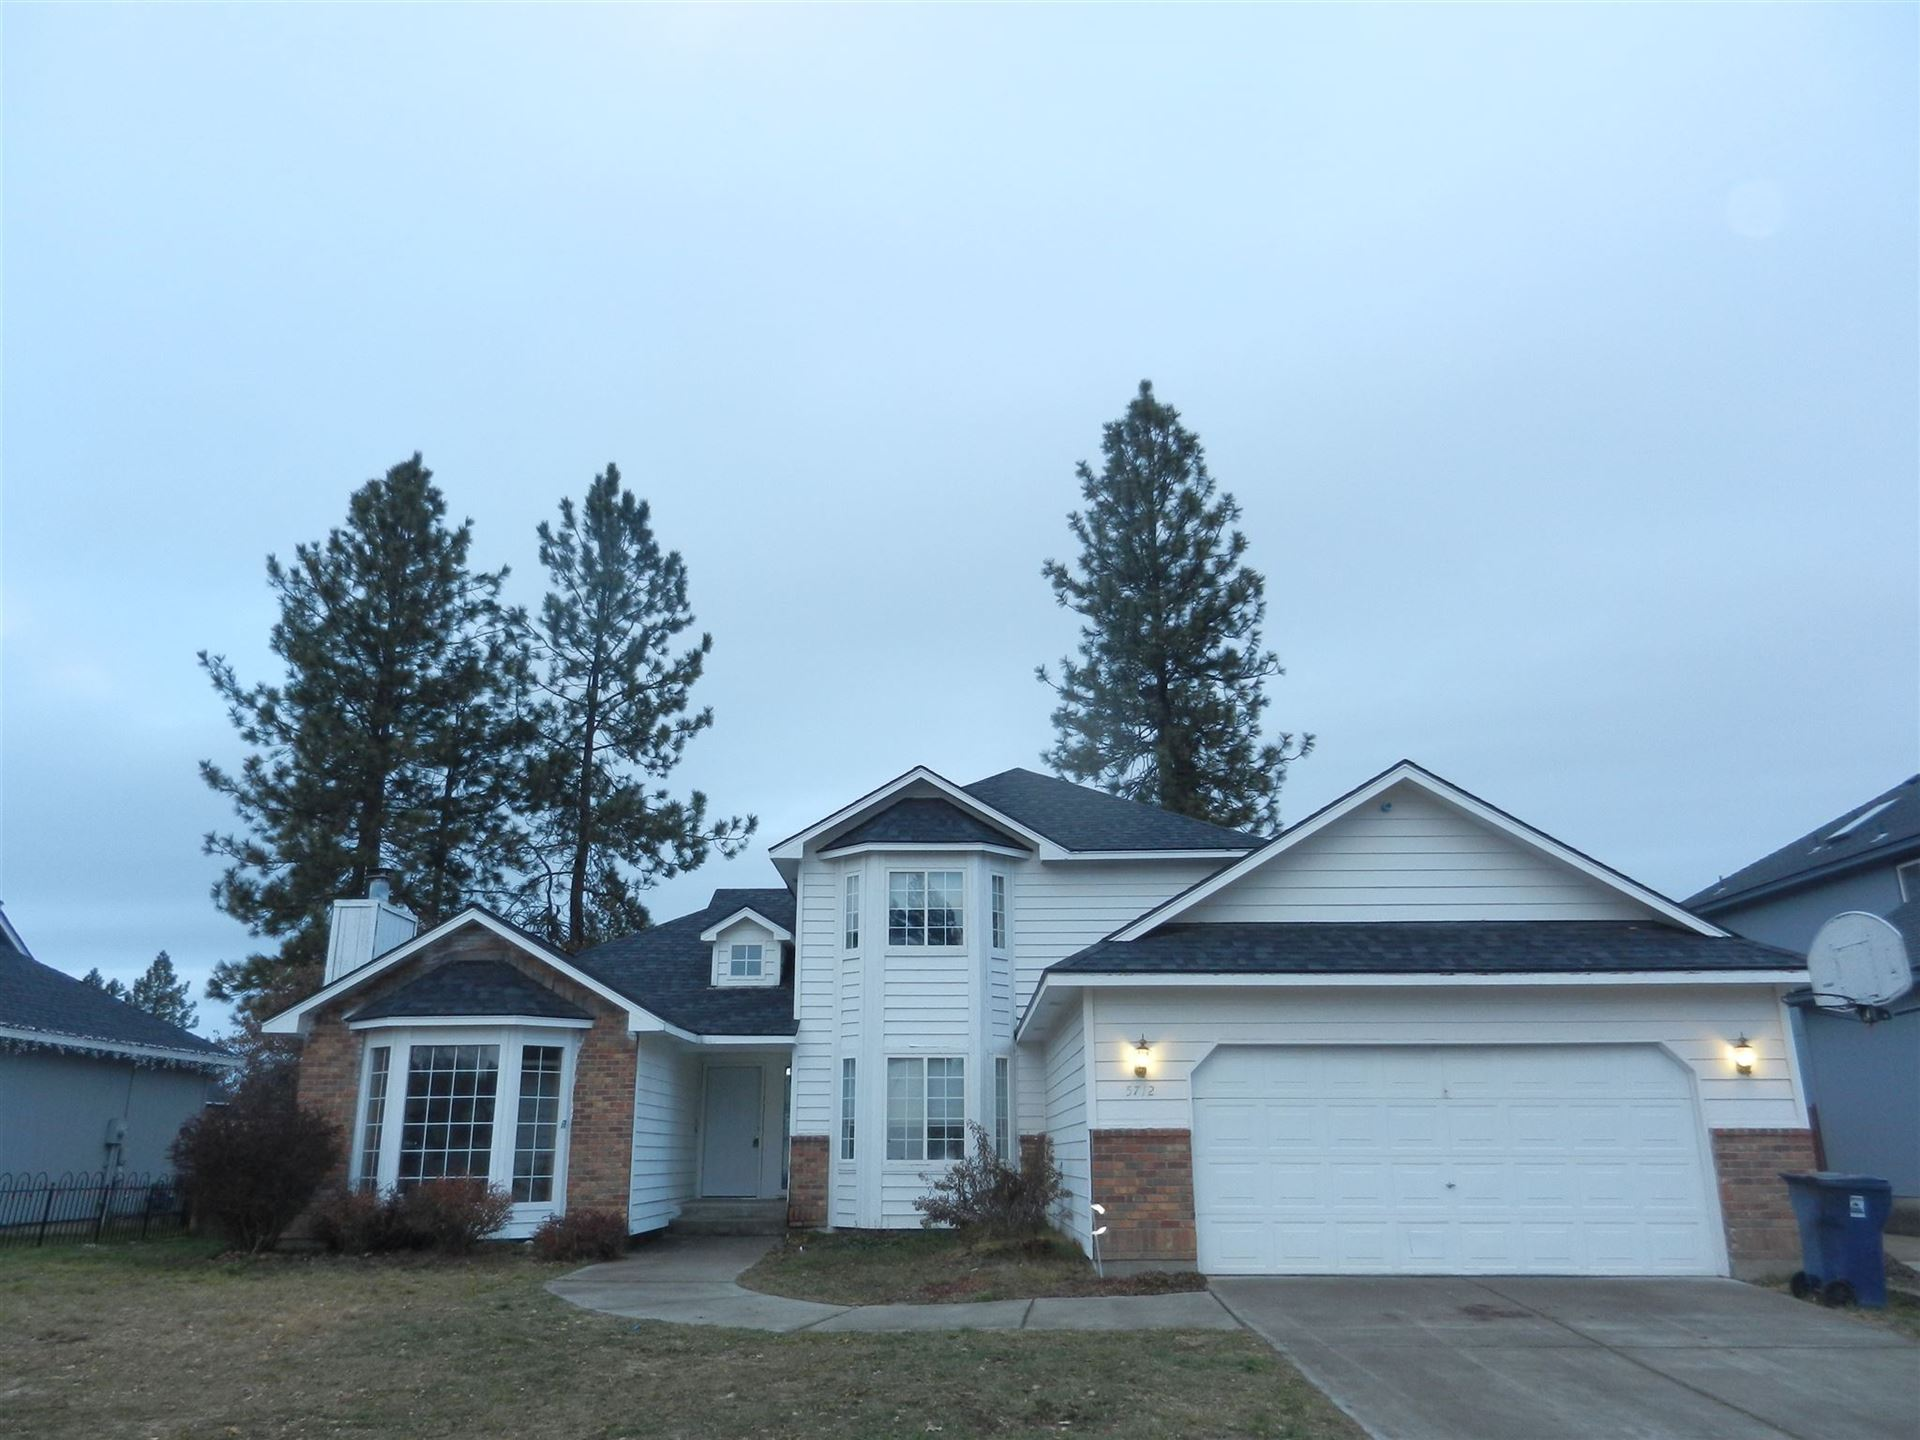 5712 W Old Fort Rd, Spokane, WA 99208 - #: 202110325